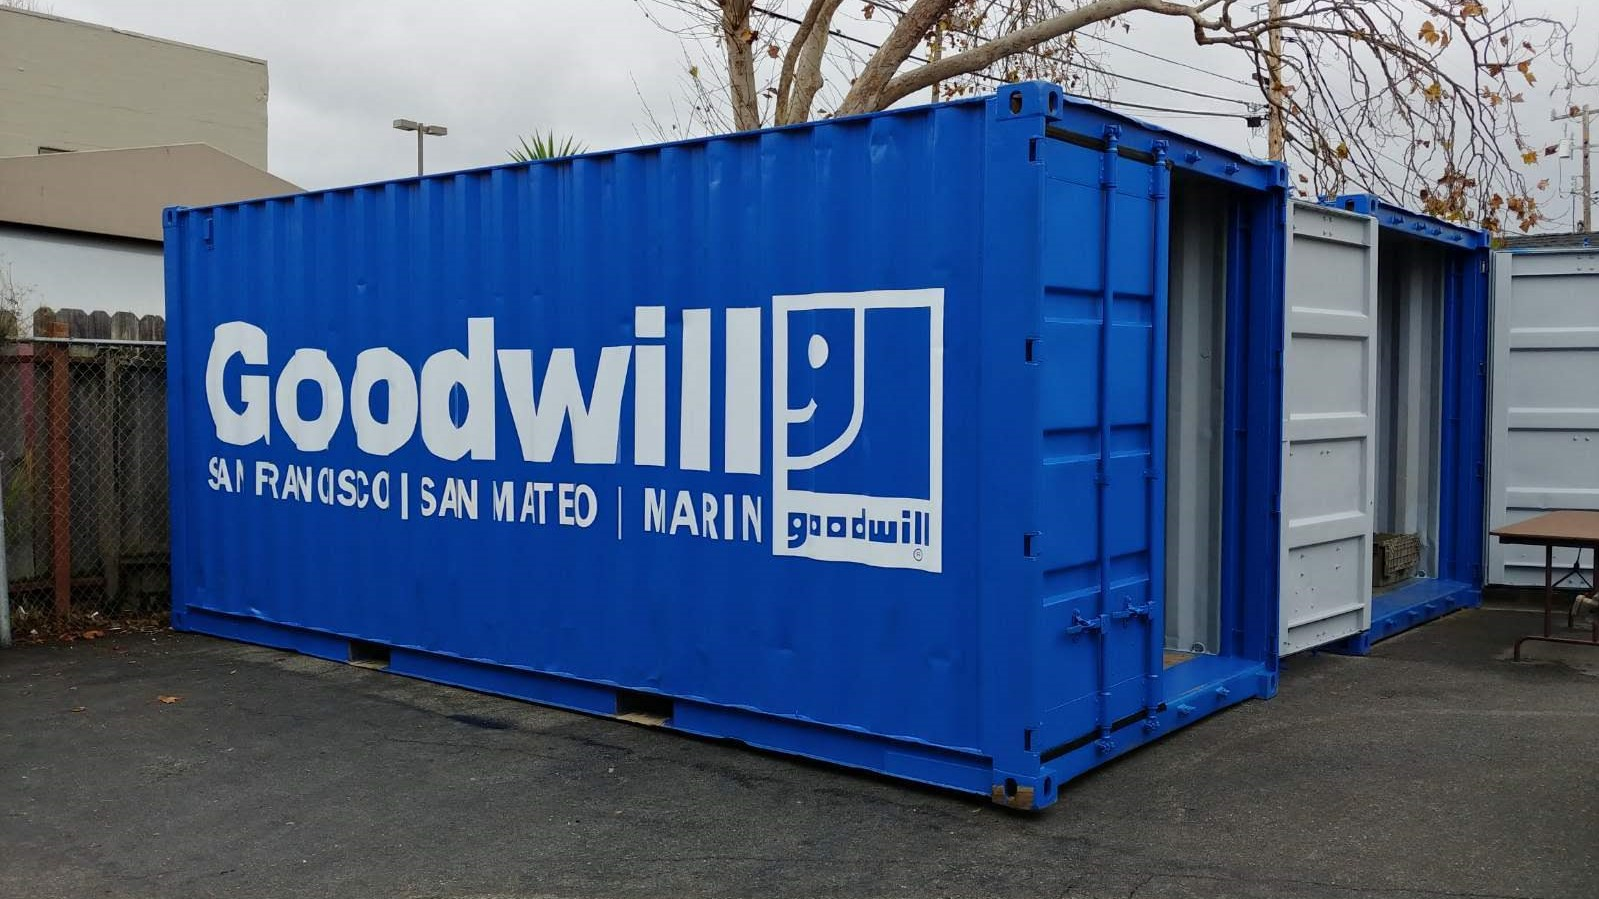 Goodwill blue 20ft shipping container San Francisco San Mateo Marin